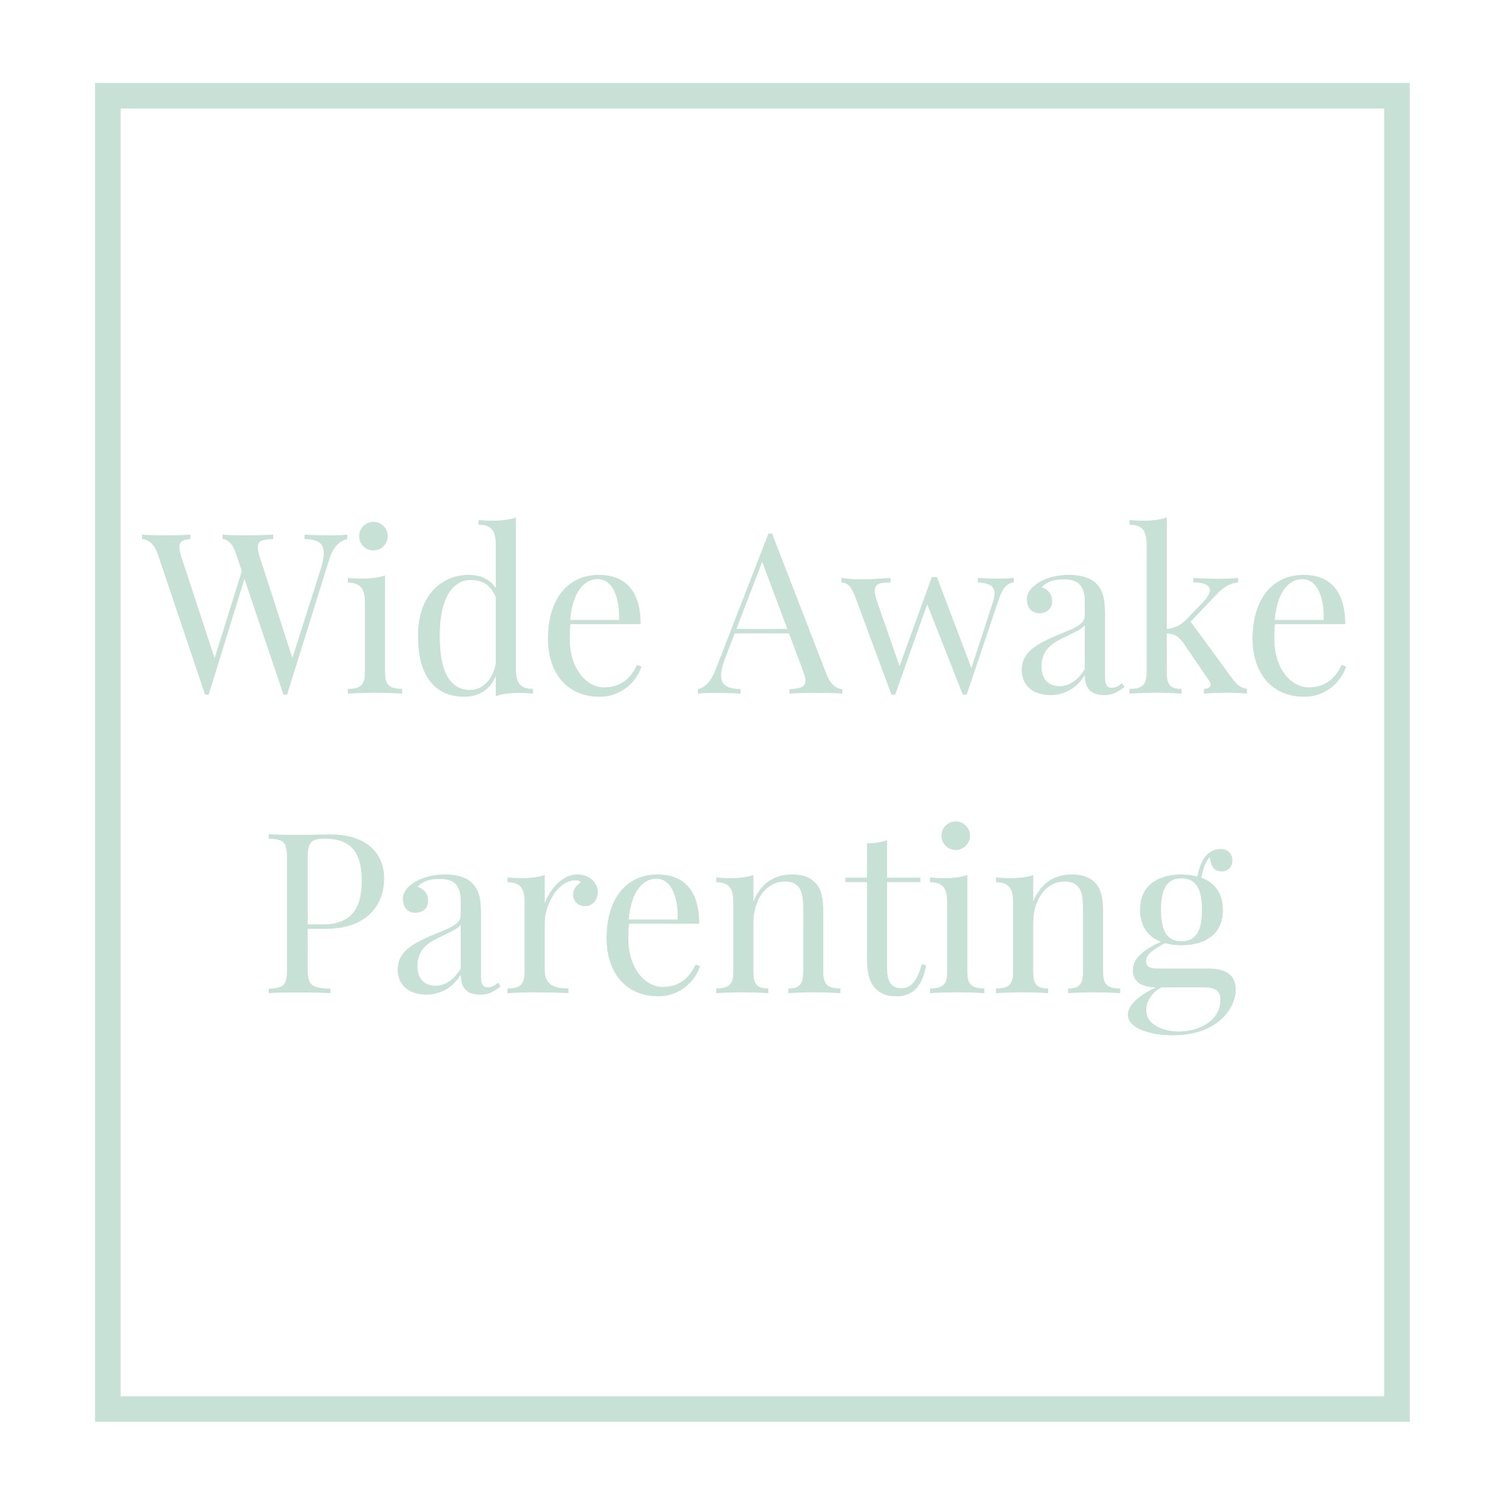 Wide Awake Parenting